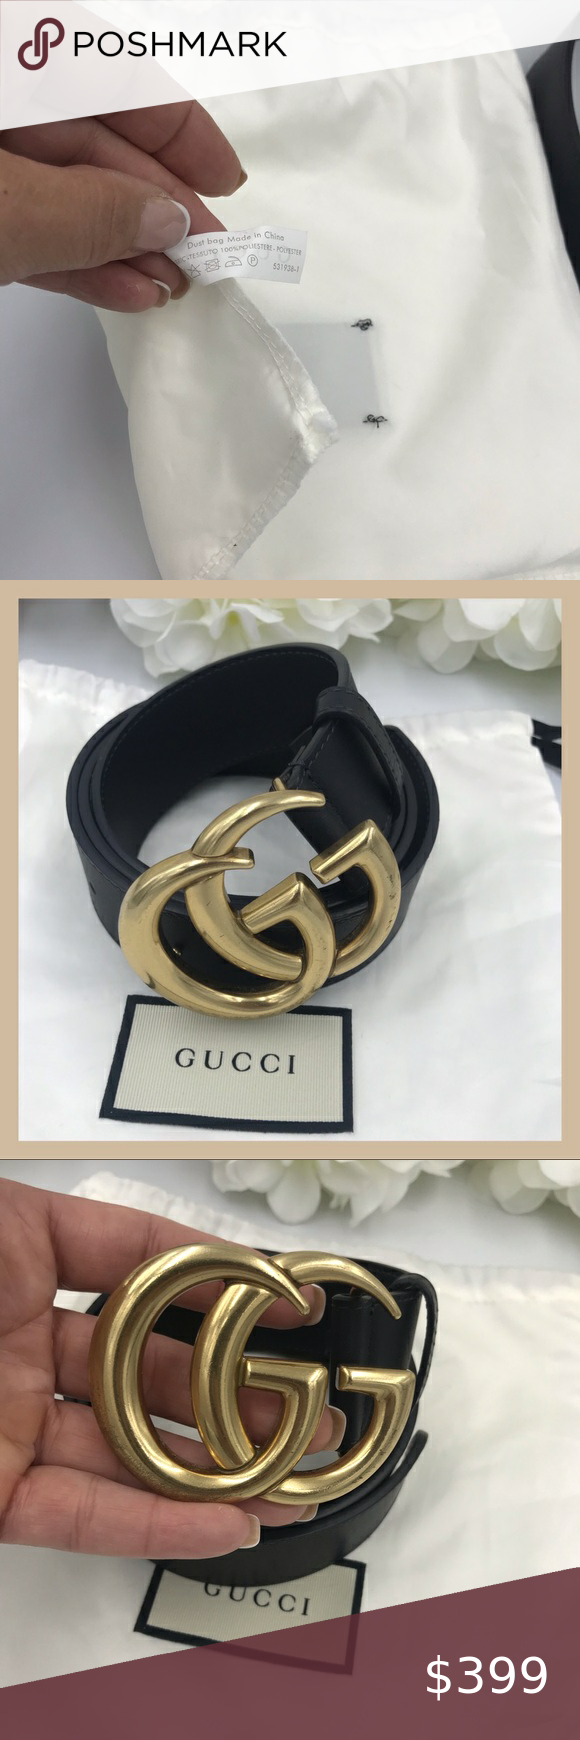 Sold Gucci Black Leather Belt Double Gg Buckle Black Leather Belt Black Gucci Belt Gucci Black